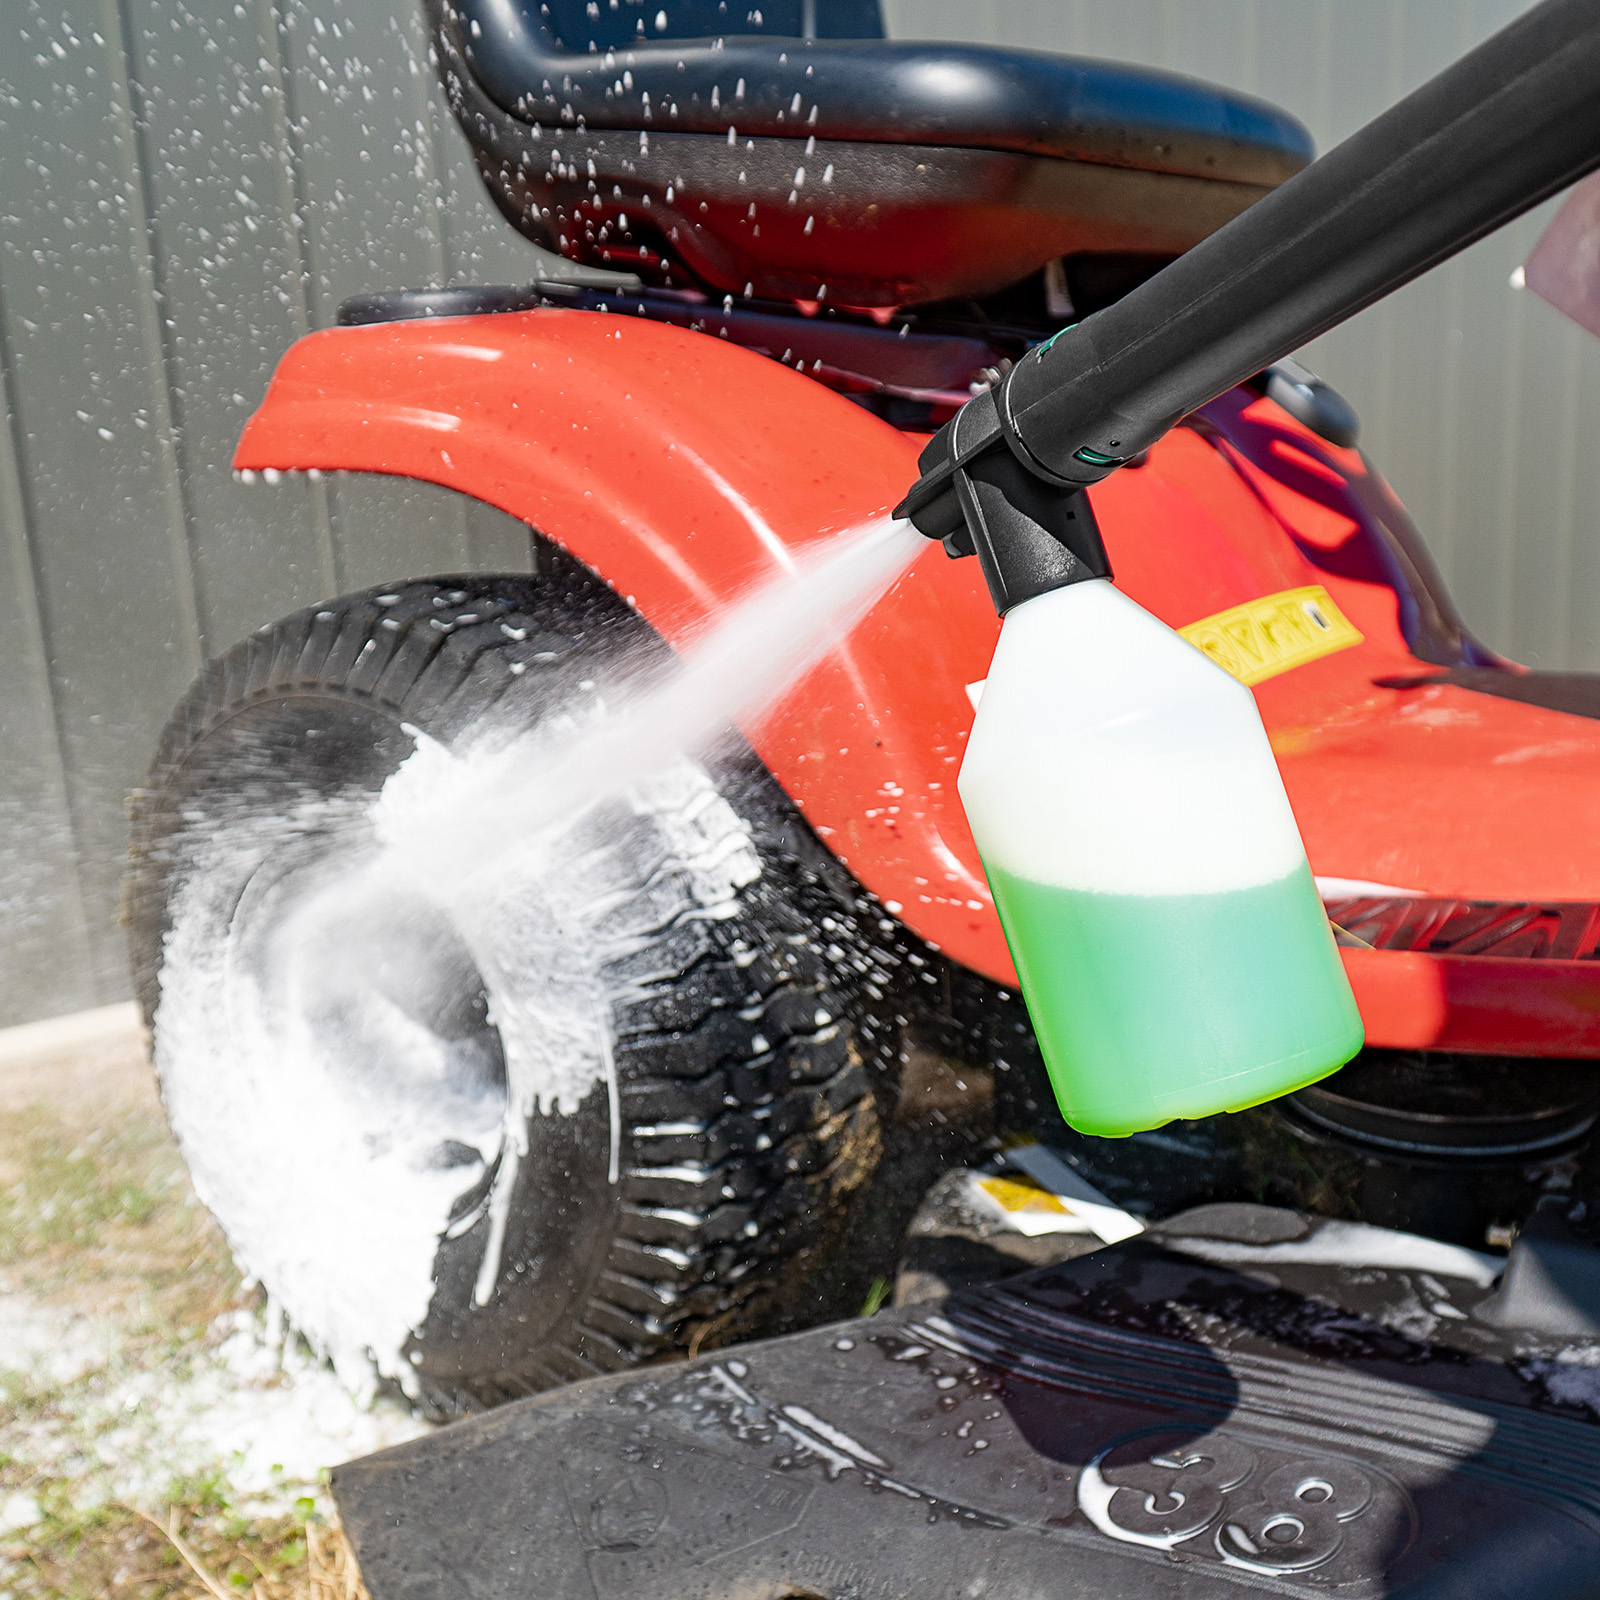 Gerni Foam Sprayer - Multi Wash Detergent - Garden Ride-On Lawn Mower